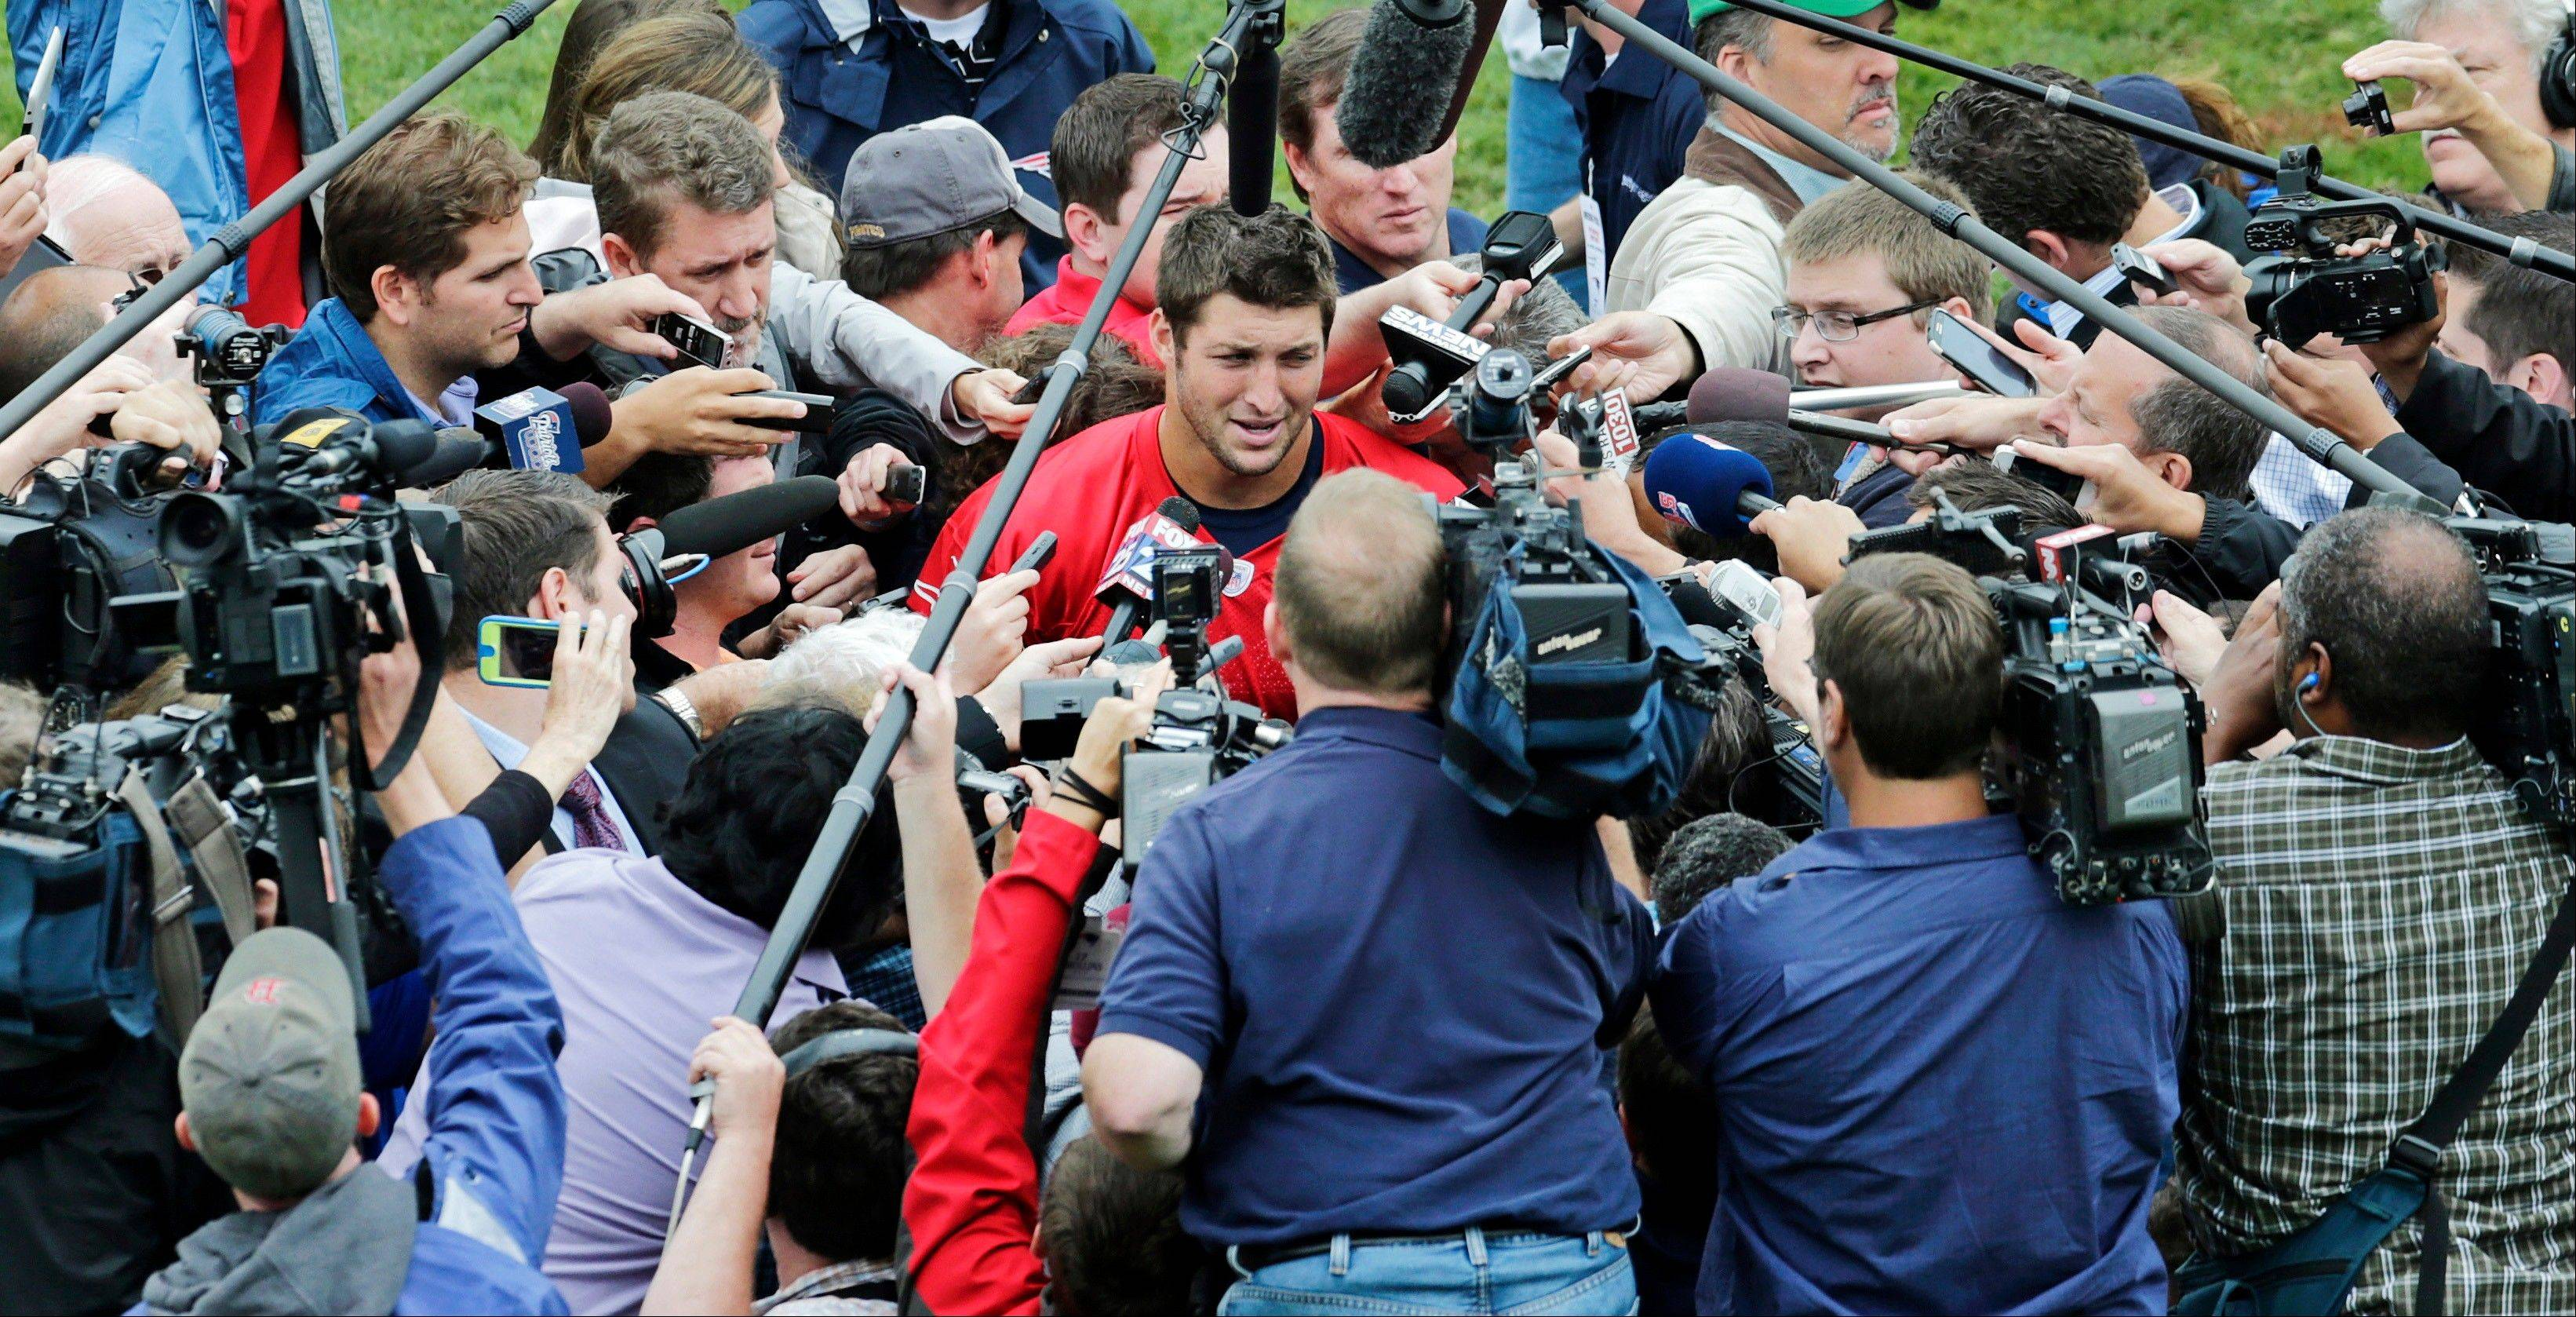 Quarterback Tim Tebow's arrival at New England Patriots minicamp this week created quite a media event.